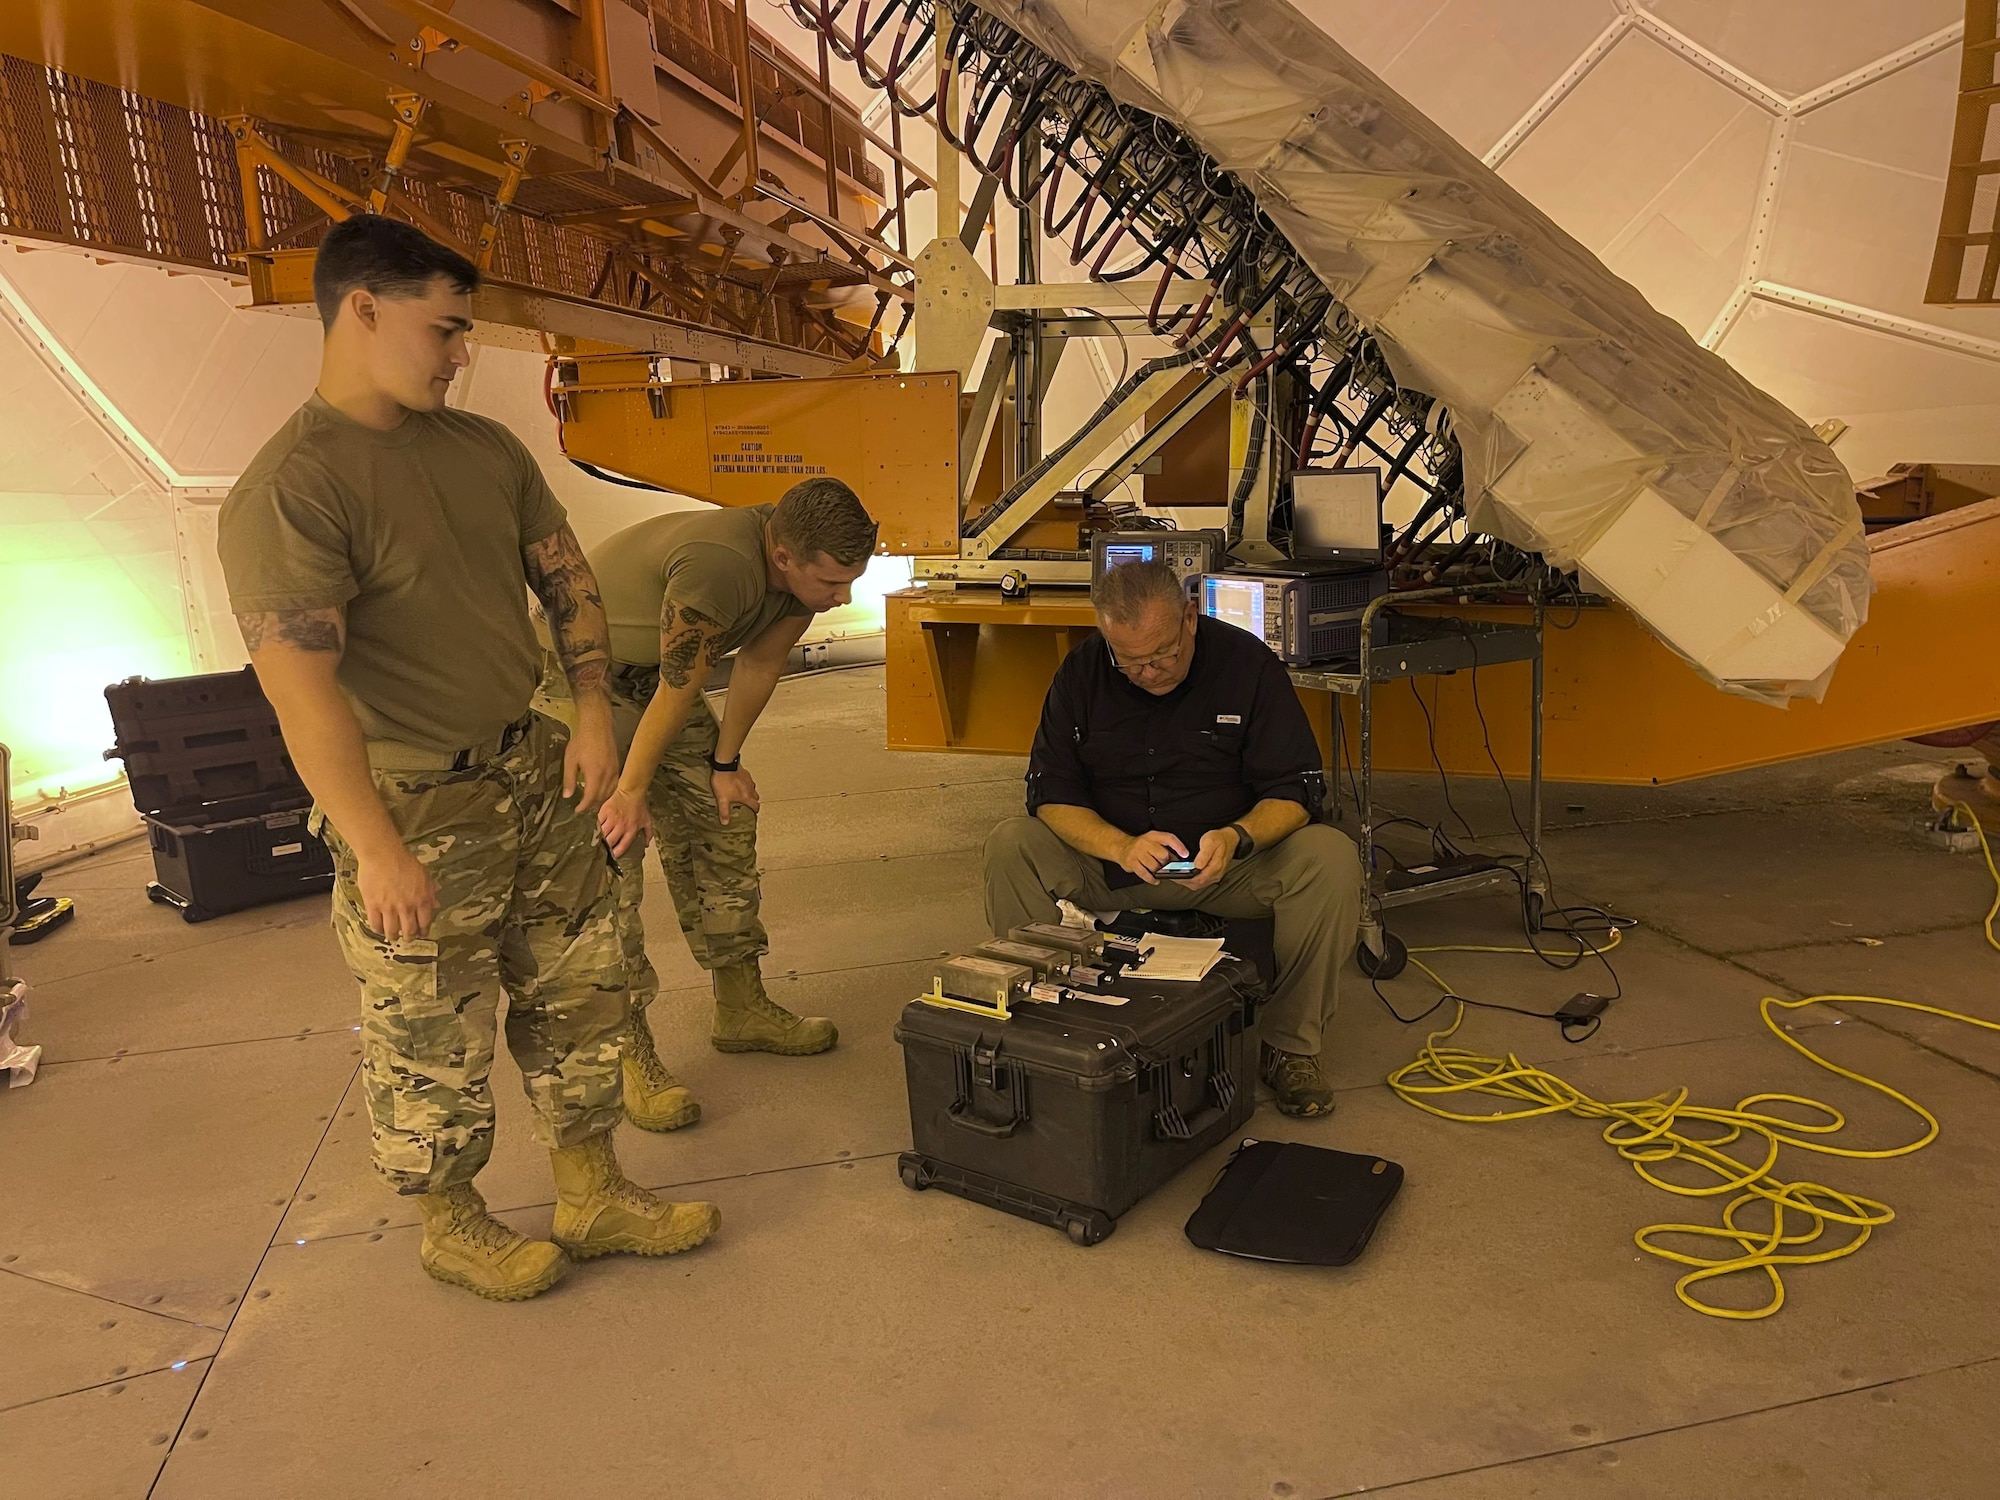 The joint radar evaluation and optimization team composed of the 84th Radar Evaluation Squadron radar team and a Federal Aviation Administration member, tests the Air Route Surveillance Radar system version 4, or ARSR-4, long-range radar, Paso Robles, Calif., Aug. 24, 2021. The 84th Radar Evaluation Squadron at Hill Air Force Base, Utah, monitors, evaluates, optimizes, and integrates fixed and long-range radars for the operational and federal communities, providing data analysis and unique radar forensics to ensure controllers have reliable and accurate sensor information to execute command and control.